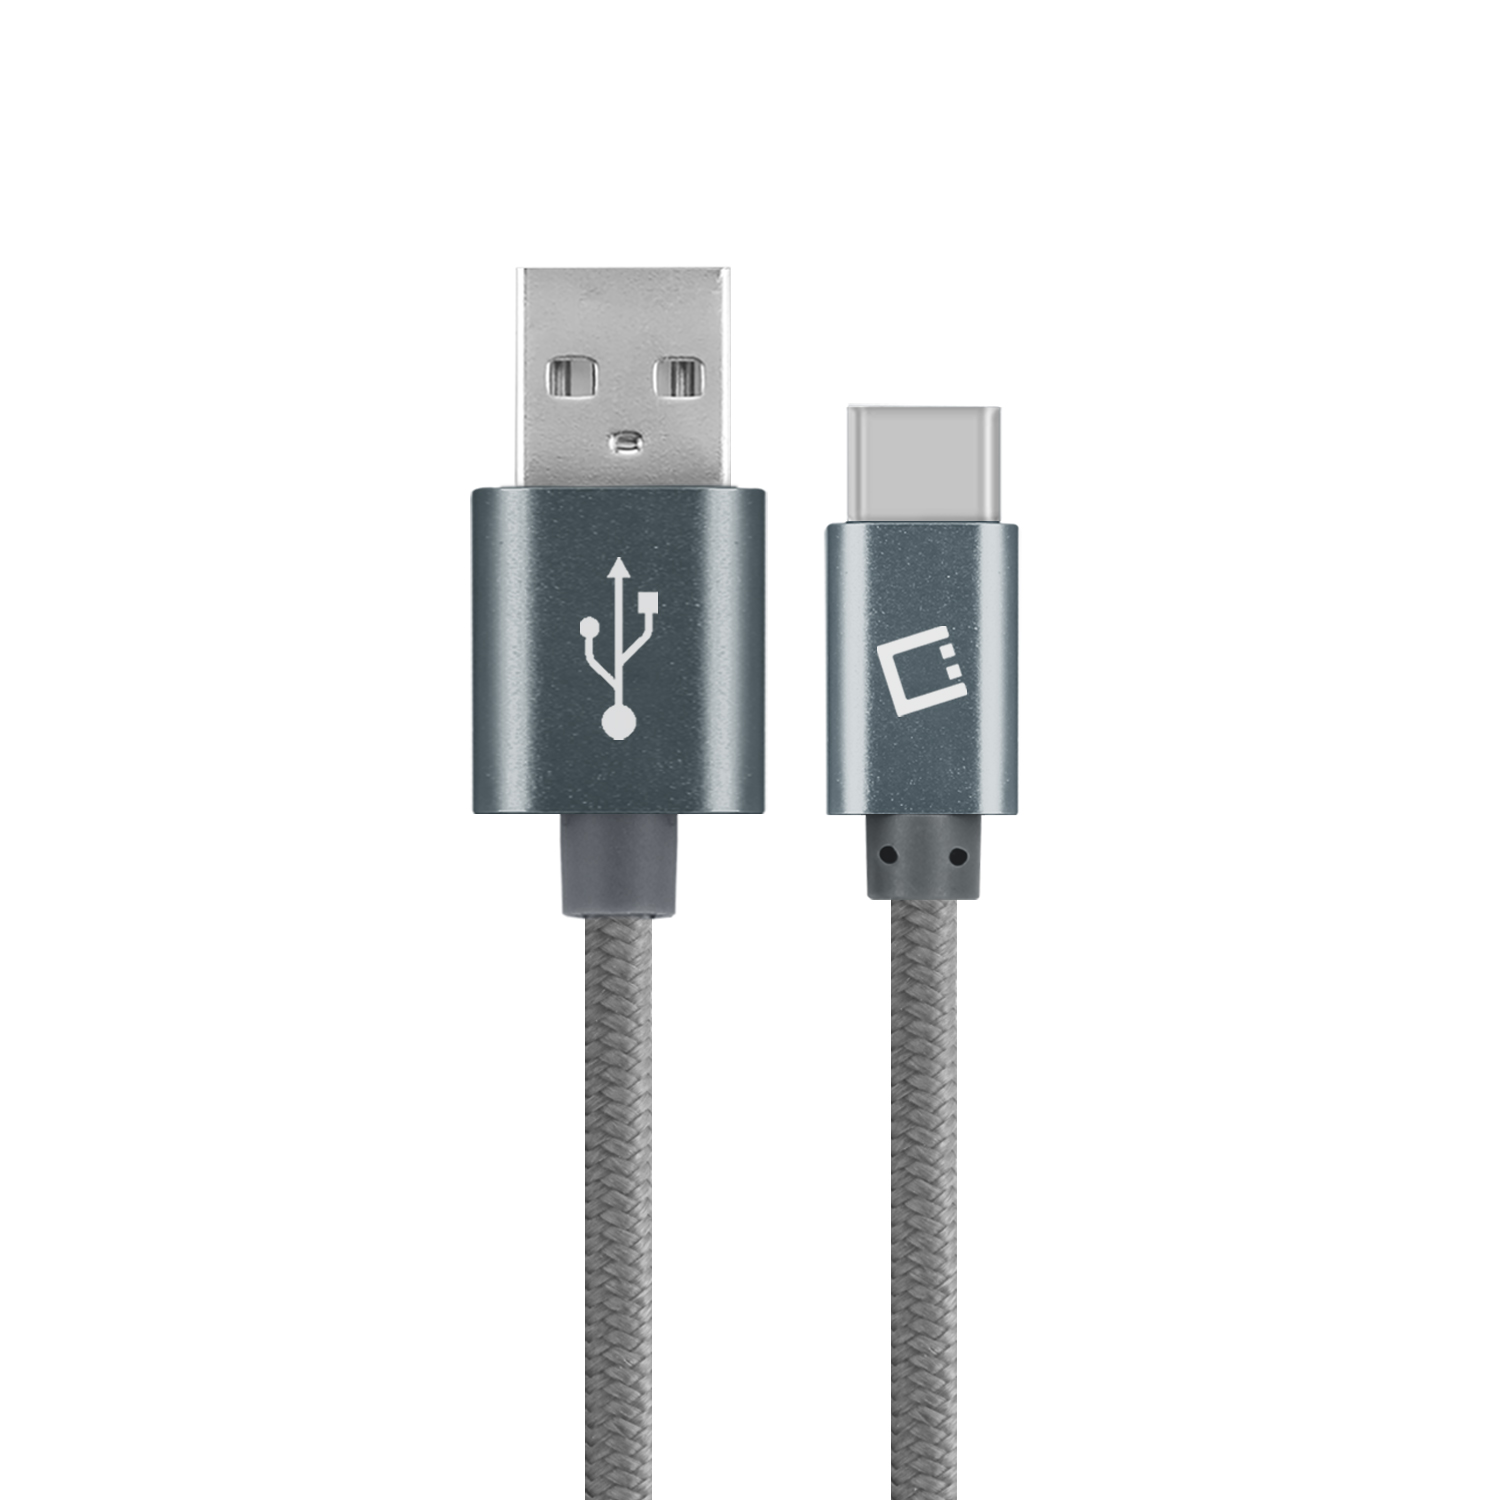 Samsung Galaxy S9 Plus USB Type-C To Type-A Braided Data Power Cable Grey 6ft Braided